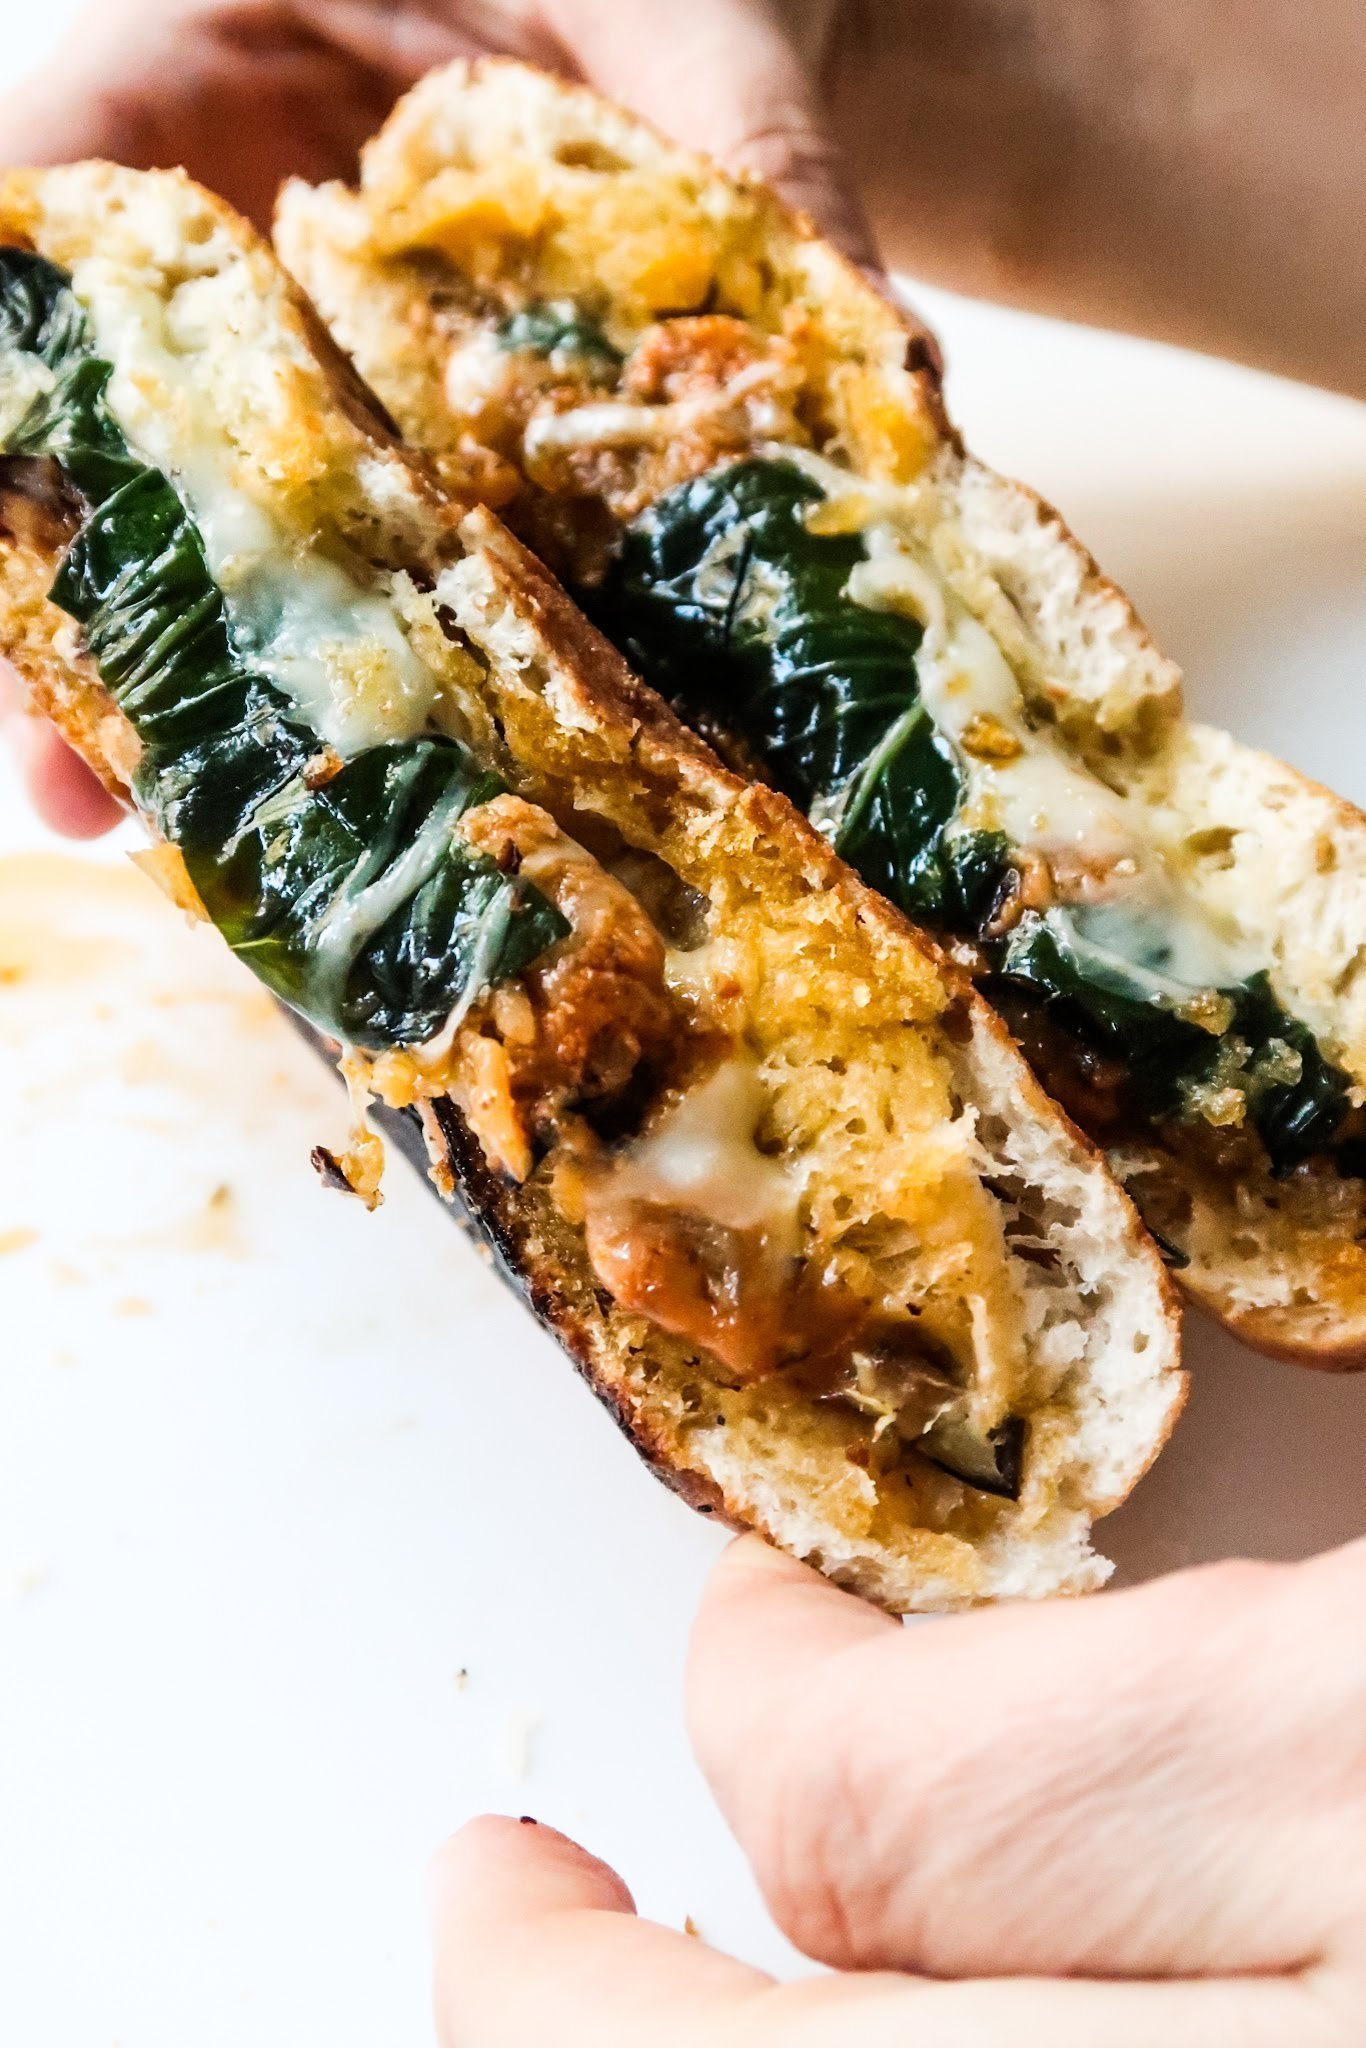 Super delicious garlic eggplant panini recipe! Don't make a regular grilled cheese sandwich - make this delicious pesto garlic and eggplant parmesan panini - it's a vegetarian eggplant recipe that is easy and incredibly delicious. It haunts me every day since I made it! #sandwich #pesto #panini #eggplant #recipe #easy